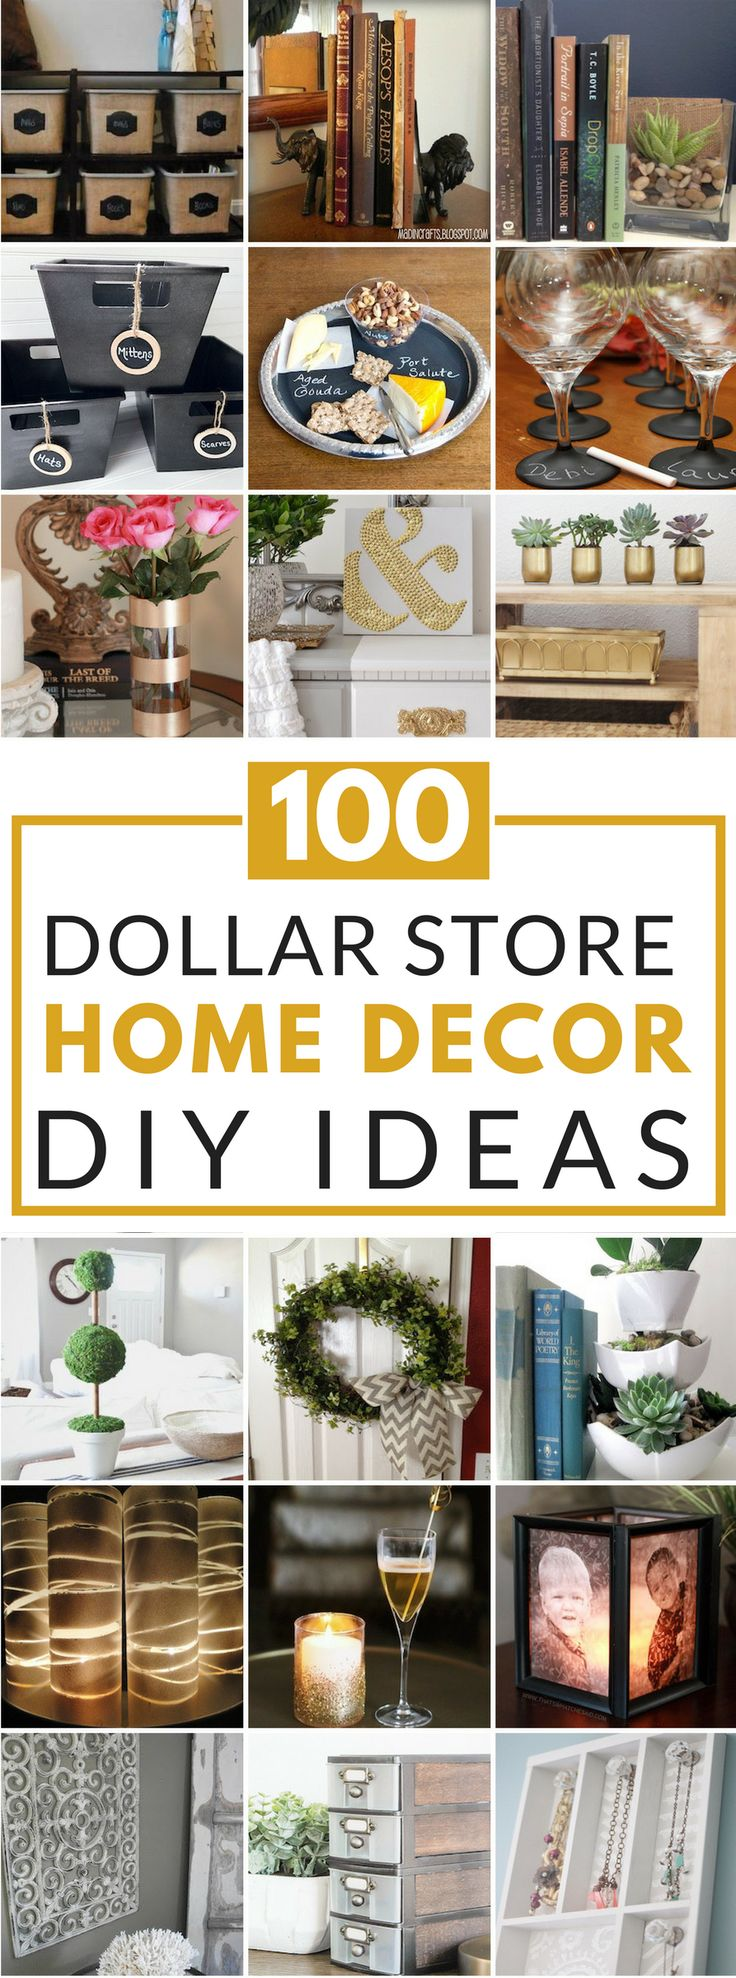 25 best ideas about dollar tree decor on pinterest dollar tree crafts dollar tree store and Home decor hacks pinterest